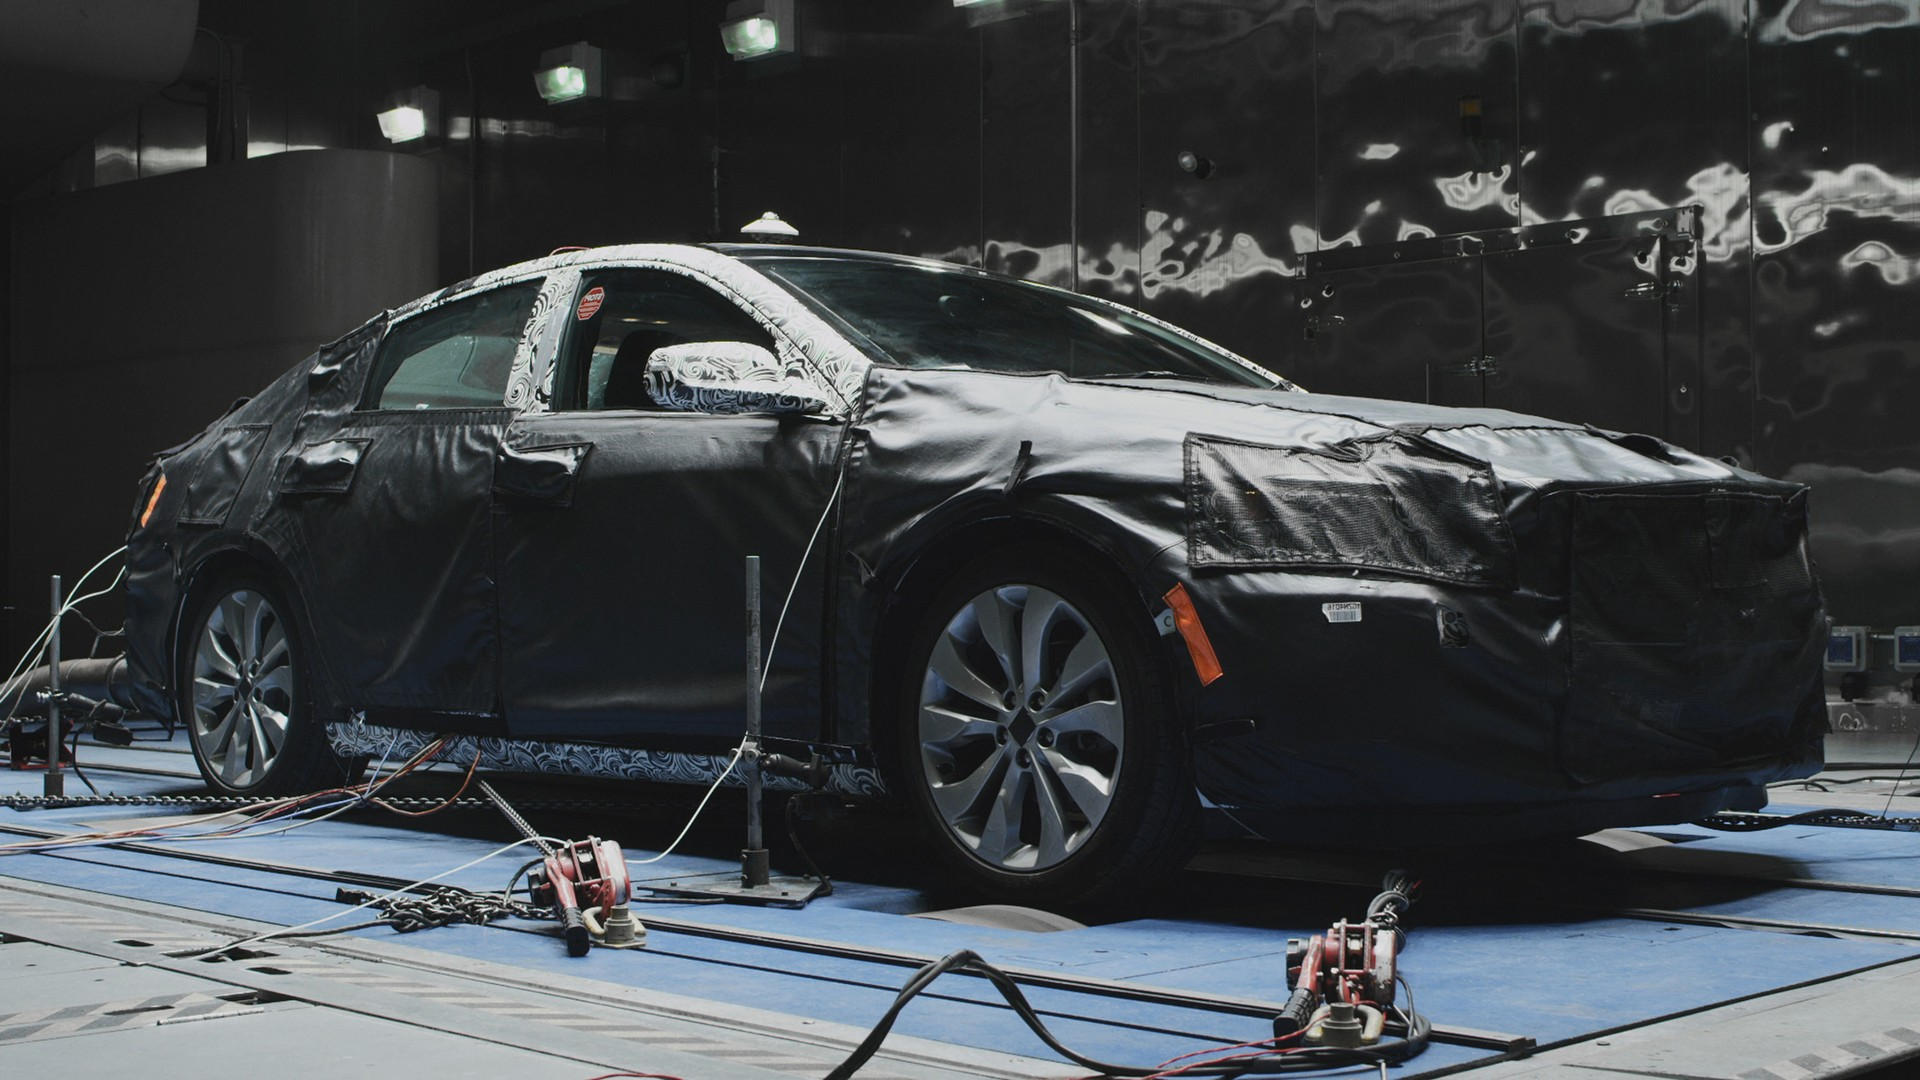 The all-new 2016 Chevrolet Malibu spent thousands of hours fine tuning its cooling systems in the Climatic Wind Tunnel as part of its extensive testing before it goes on sale in late 2015 © General Motors